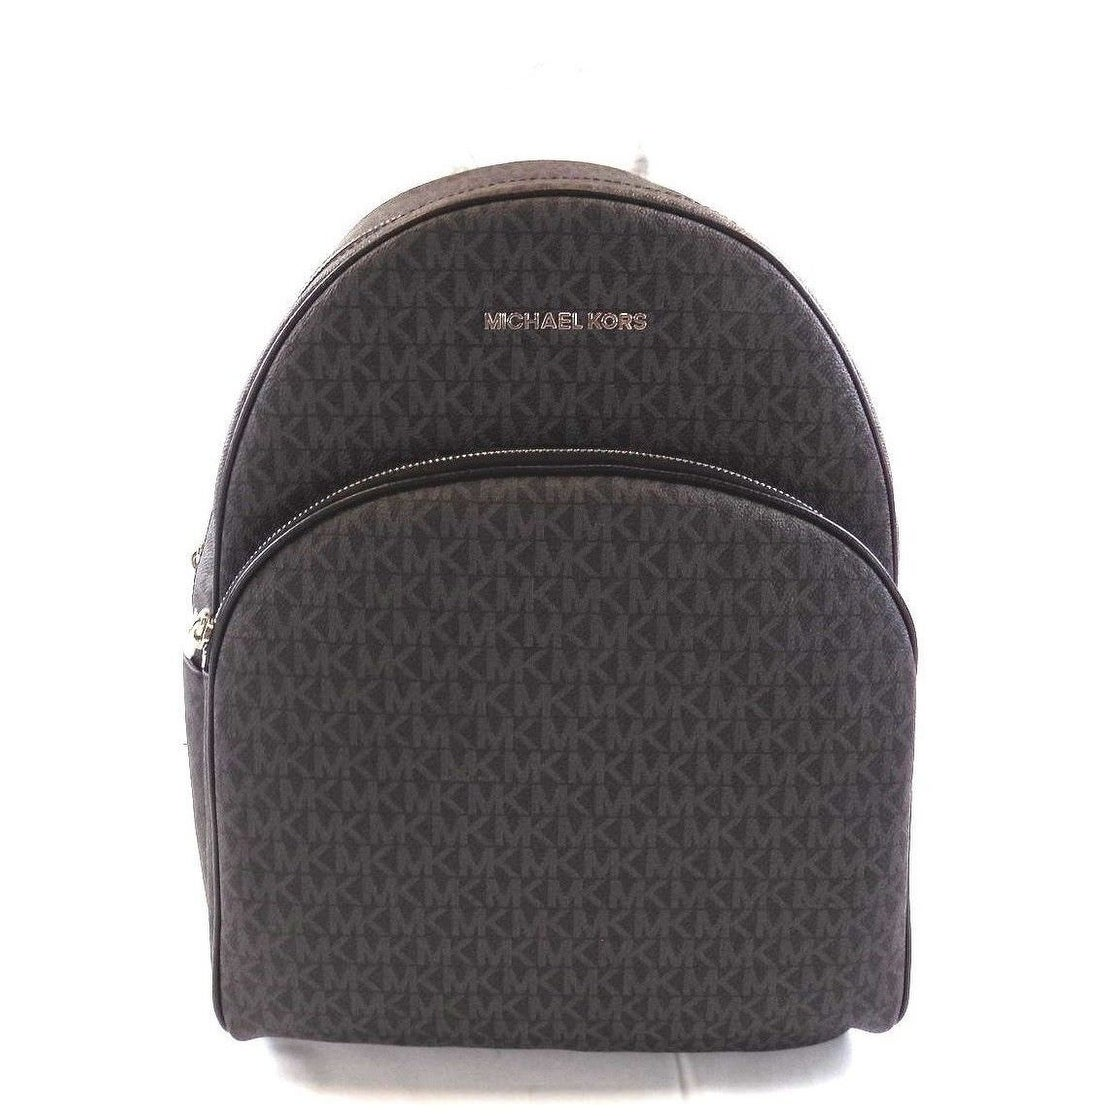 865905dba58e Shop MIchael Kors Abbey Jet Set Large PVC Signature Leather Backpack - Free  Shipping Today - Overstock - 23045169